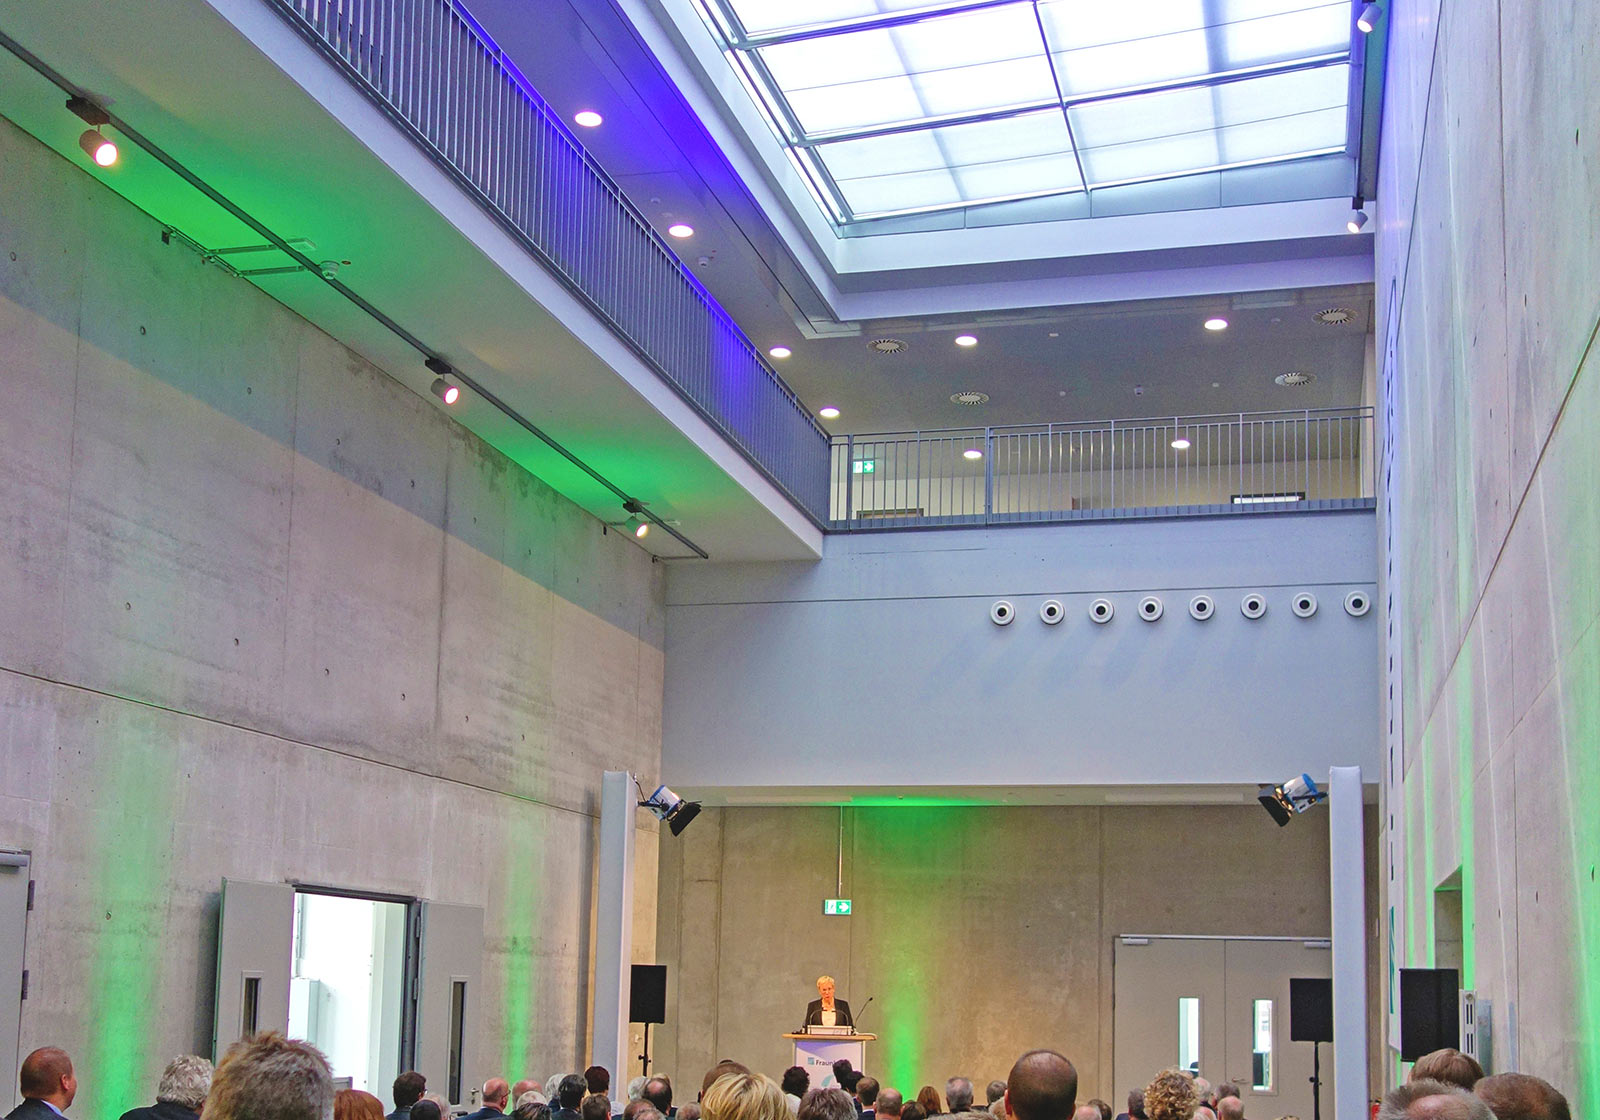 The colored lighting and various lighting reflections of the elegant atrium established a special atmosphere for the opening event. Photo: Fraunhofer IFAM